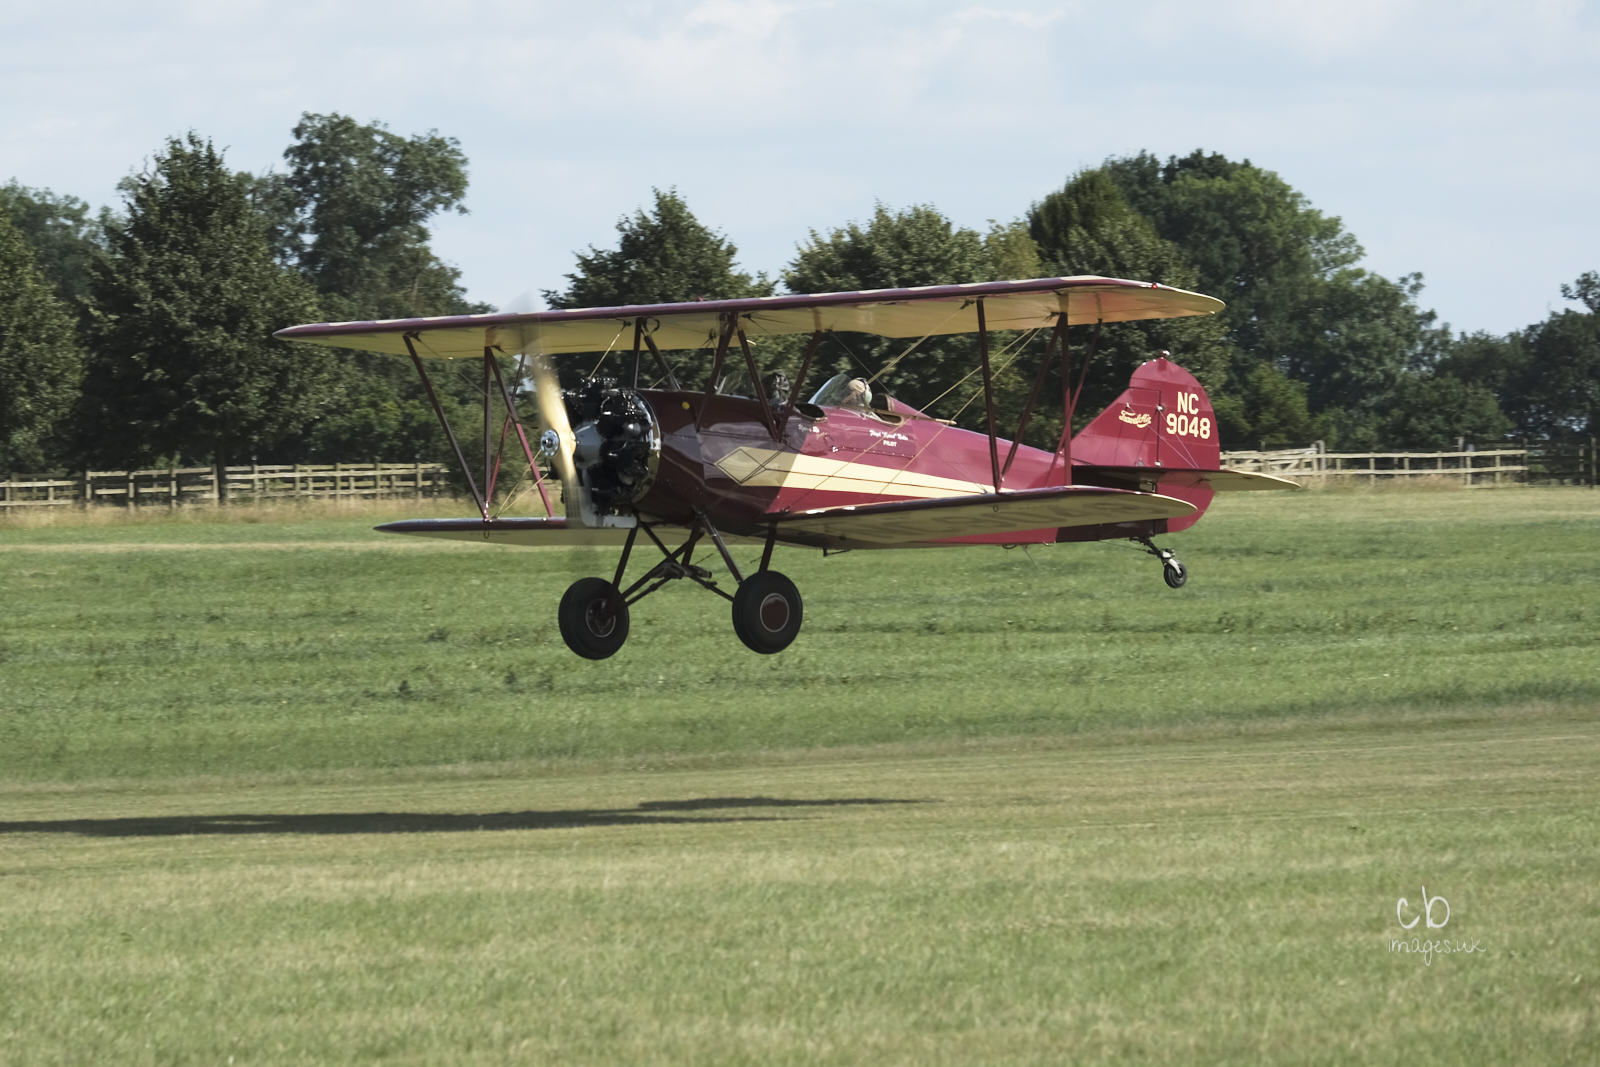 A biplane about to land